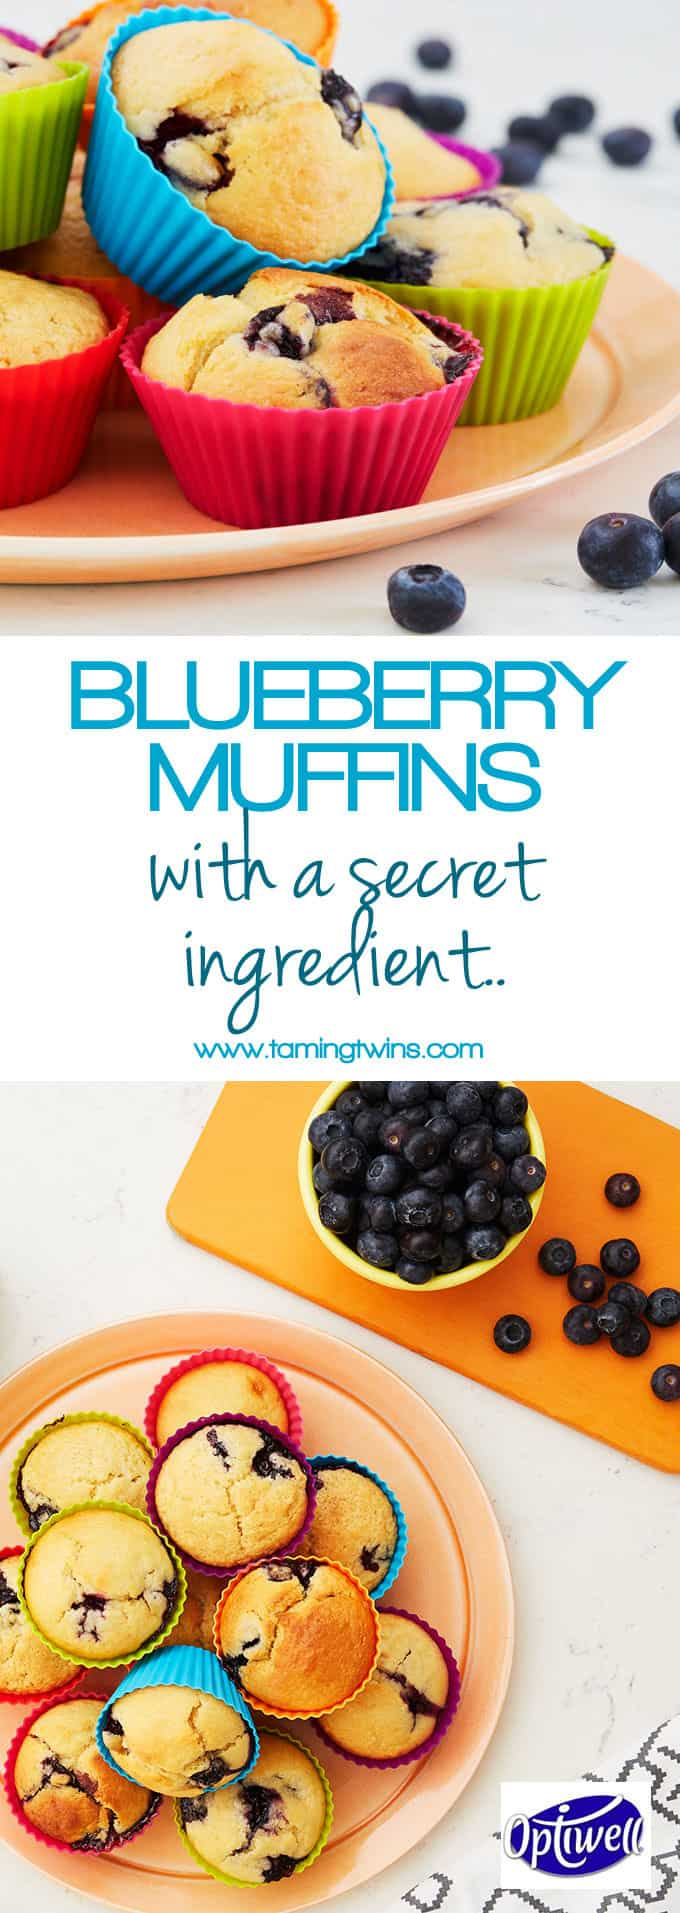 Blueberry muffins made with Optiwell yoghurt drink, for a deliciously tasty cake. Perfect for breakfast or an afternoon tea treat. https://www.tamingtwins.com